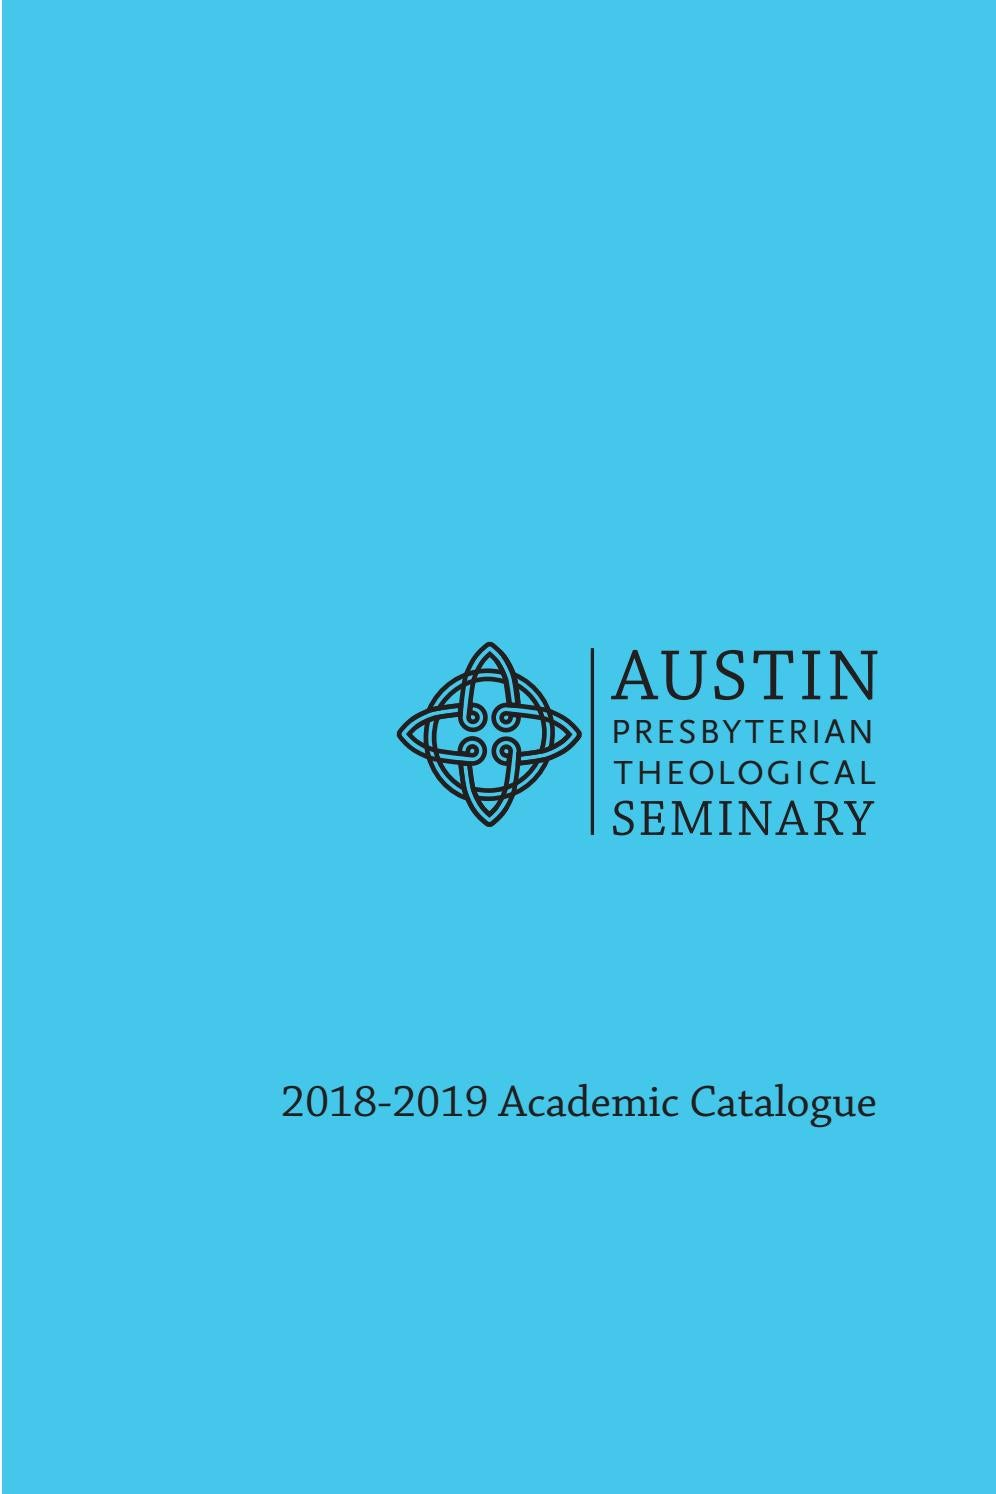 Austin Presbyterian Theological Seminary Catalogue 2018 19 By Austin Presbyterian Theological Seminary Issuu